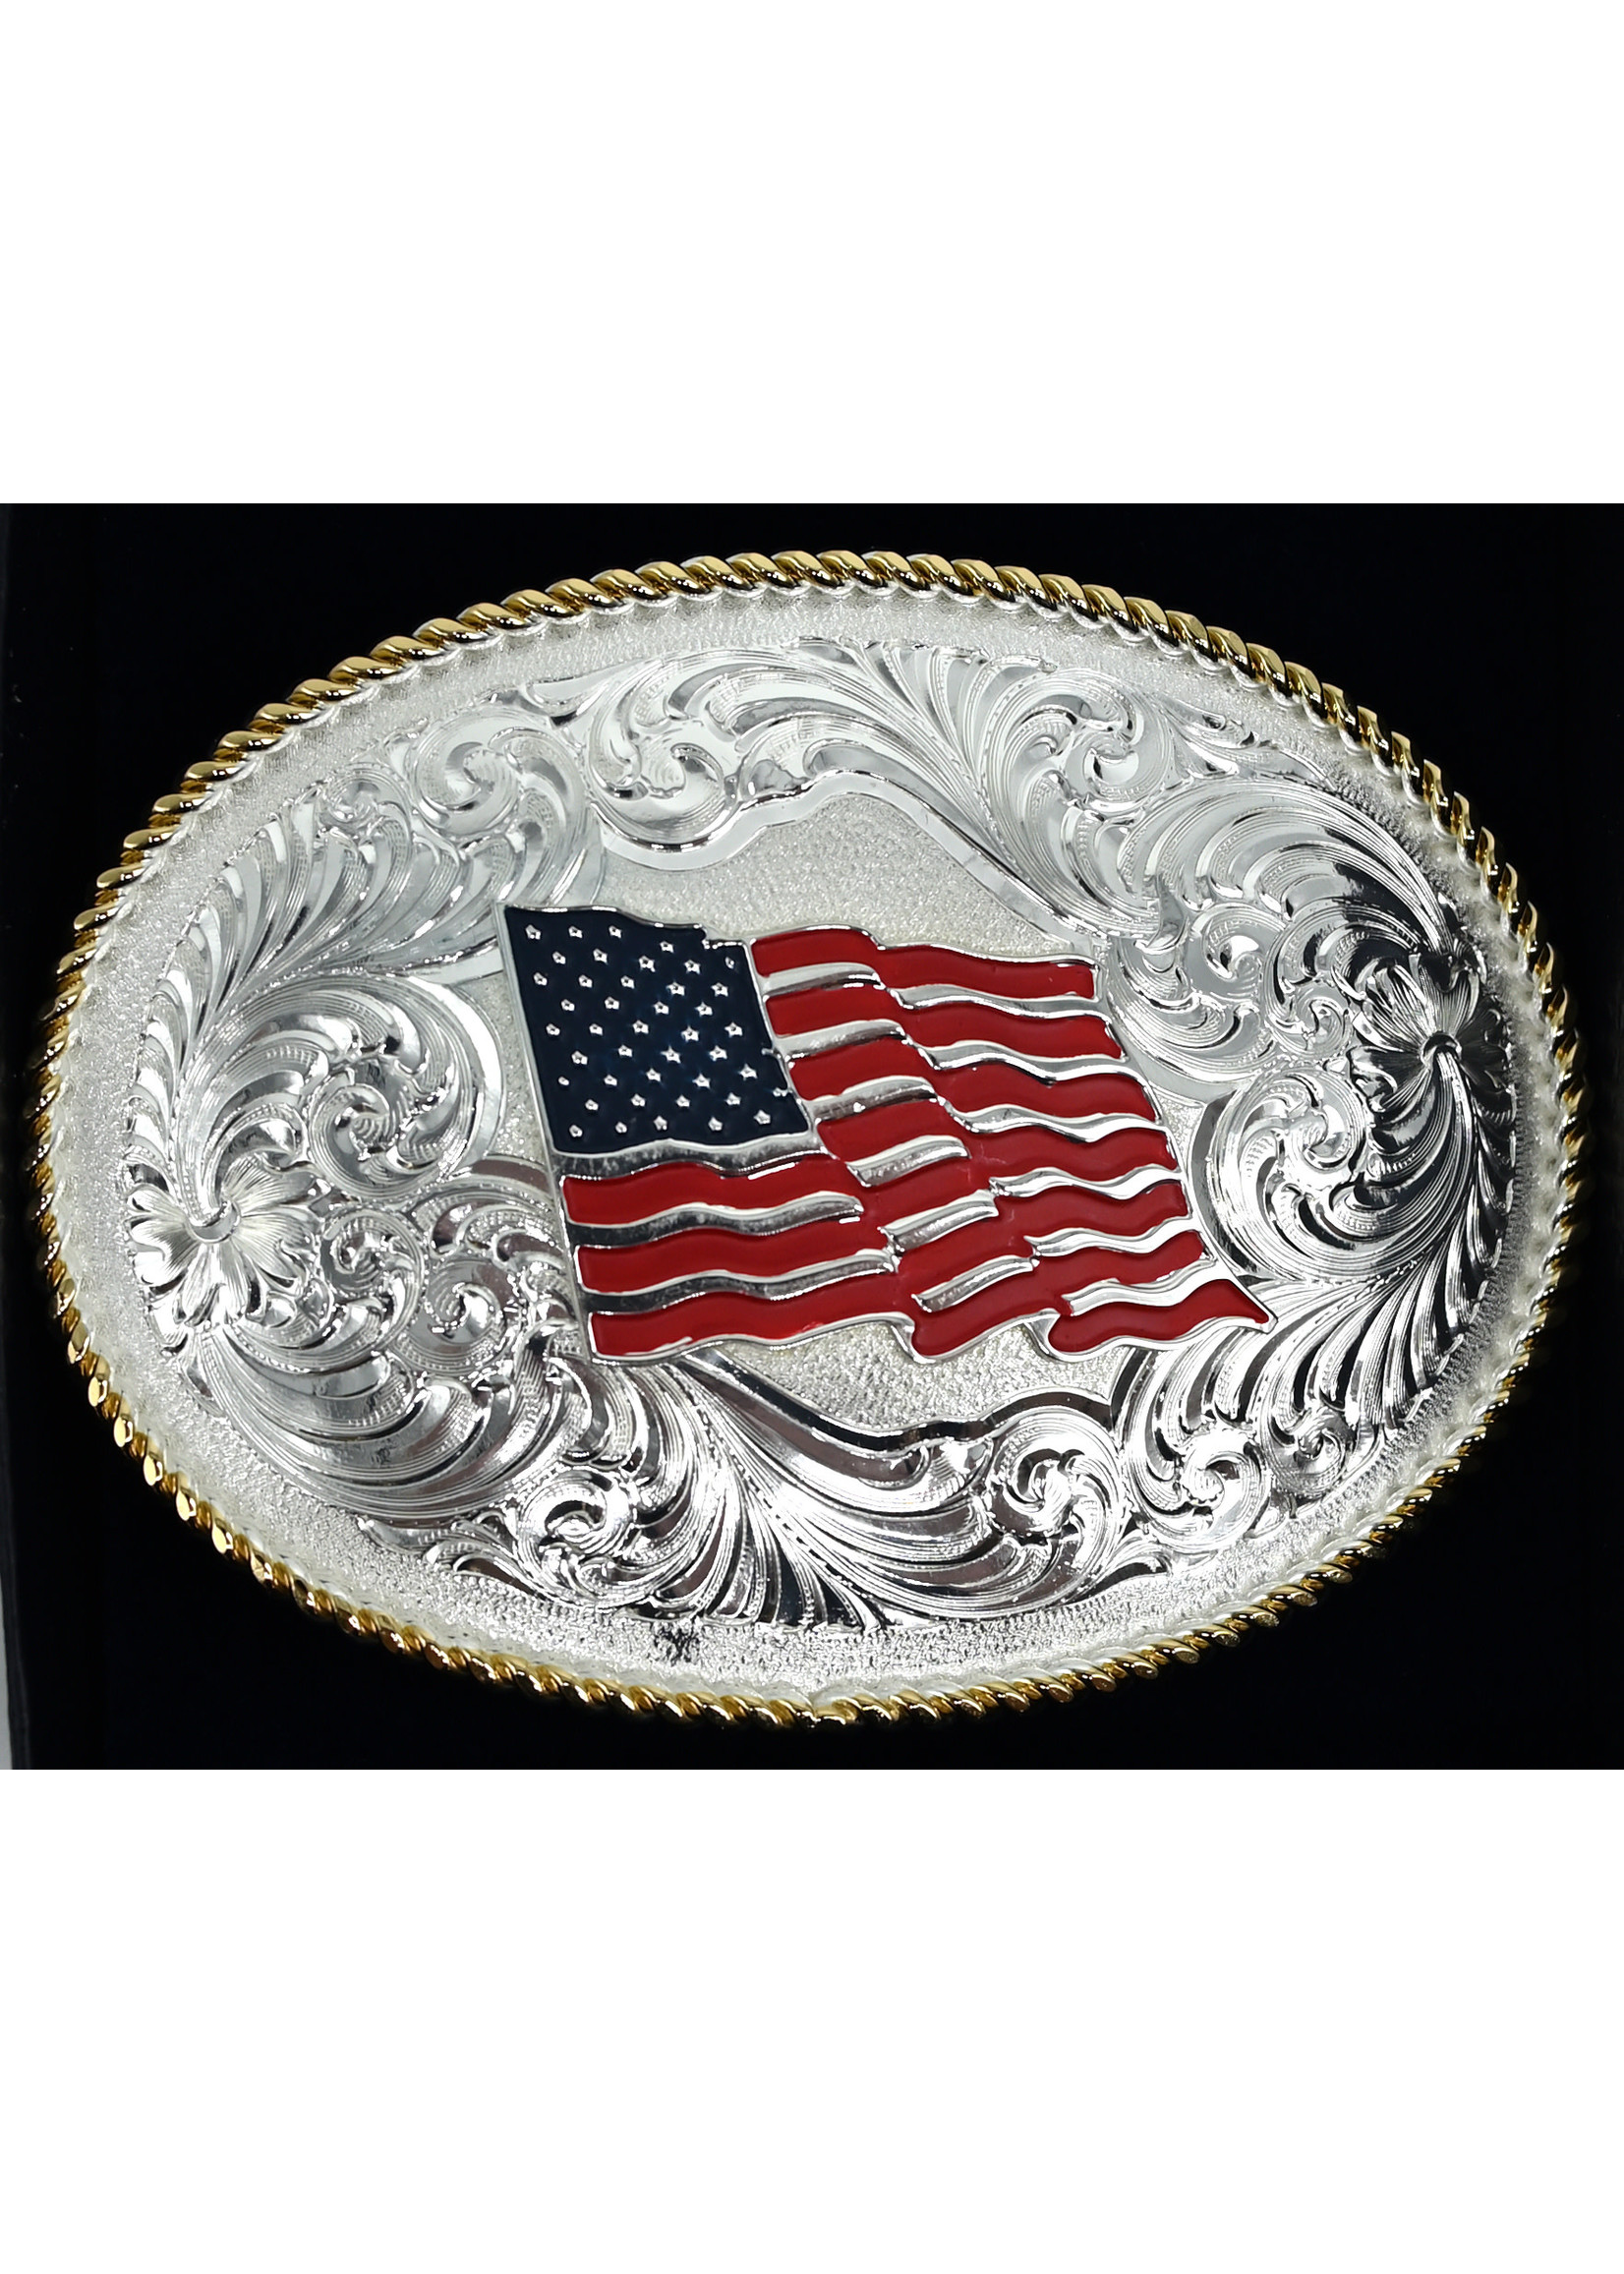 Montana Silversmiths 1340-874 - American Flag Gold Rope 3.75x 2.75